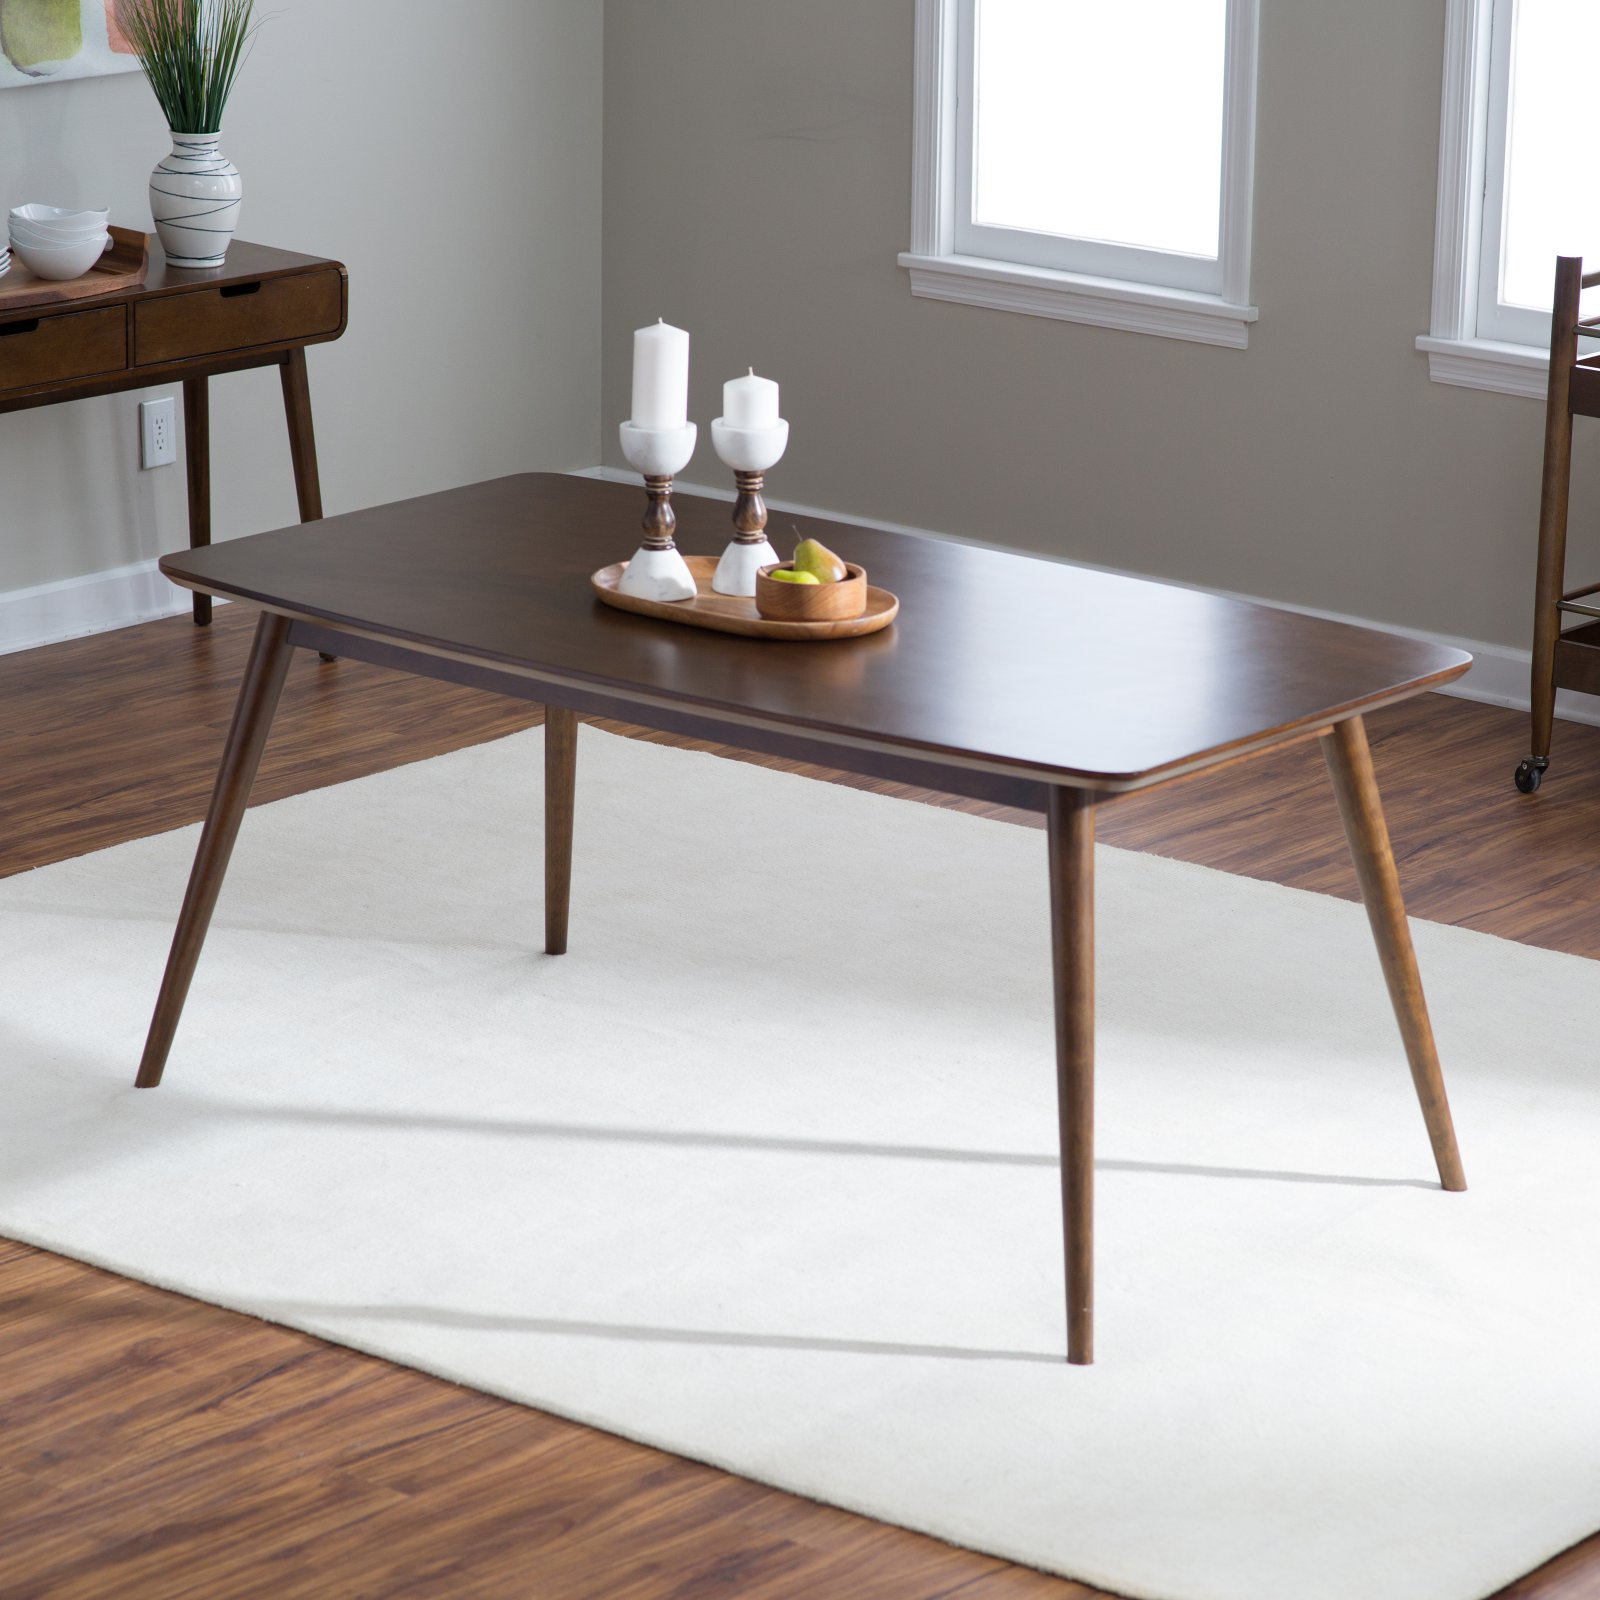 Belham Living Carter Mid-Century Modern Dining Table